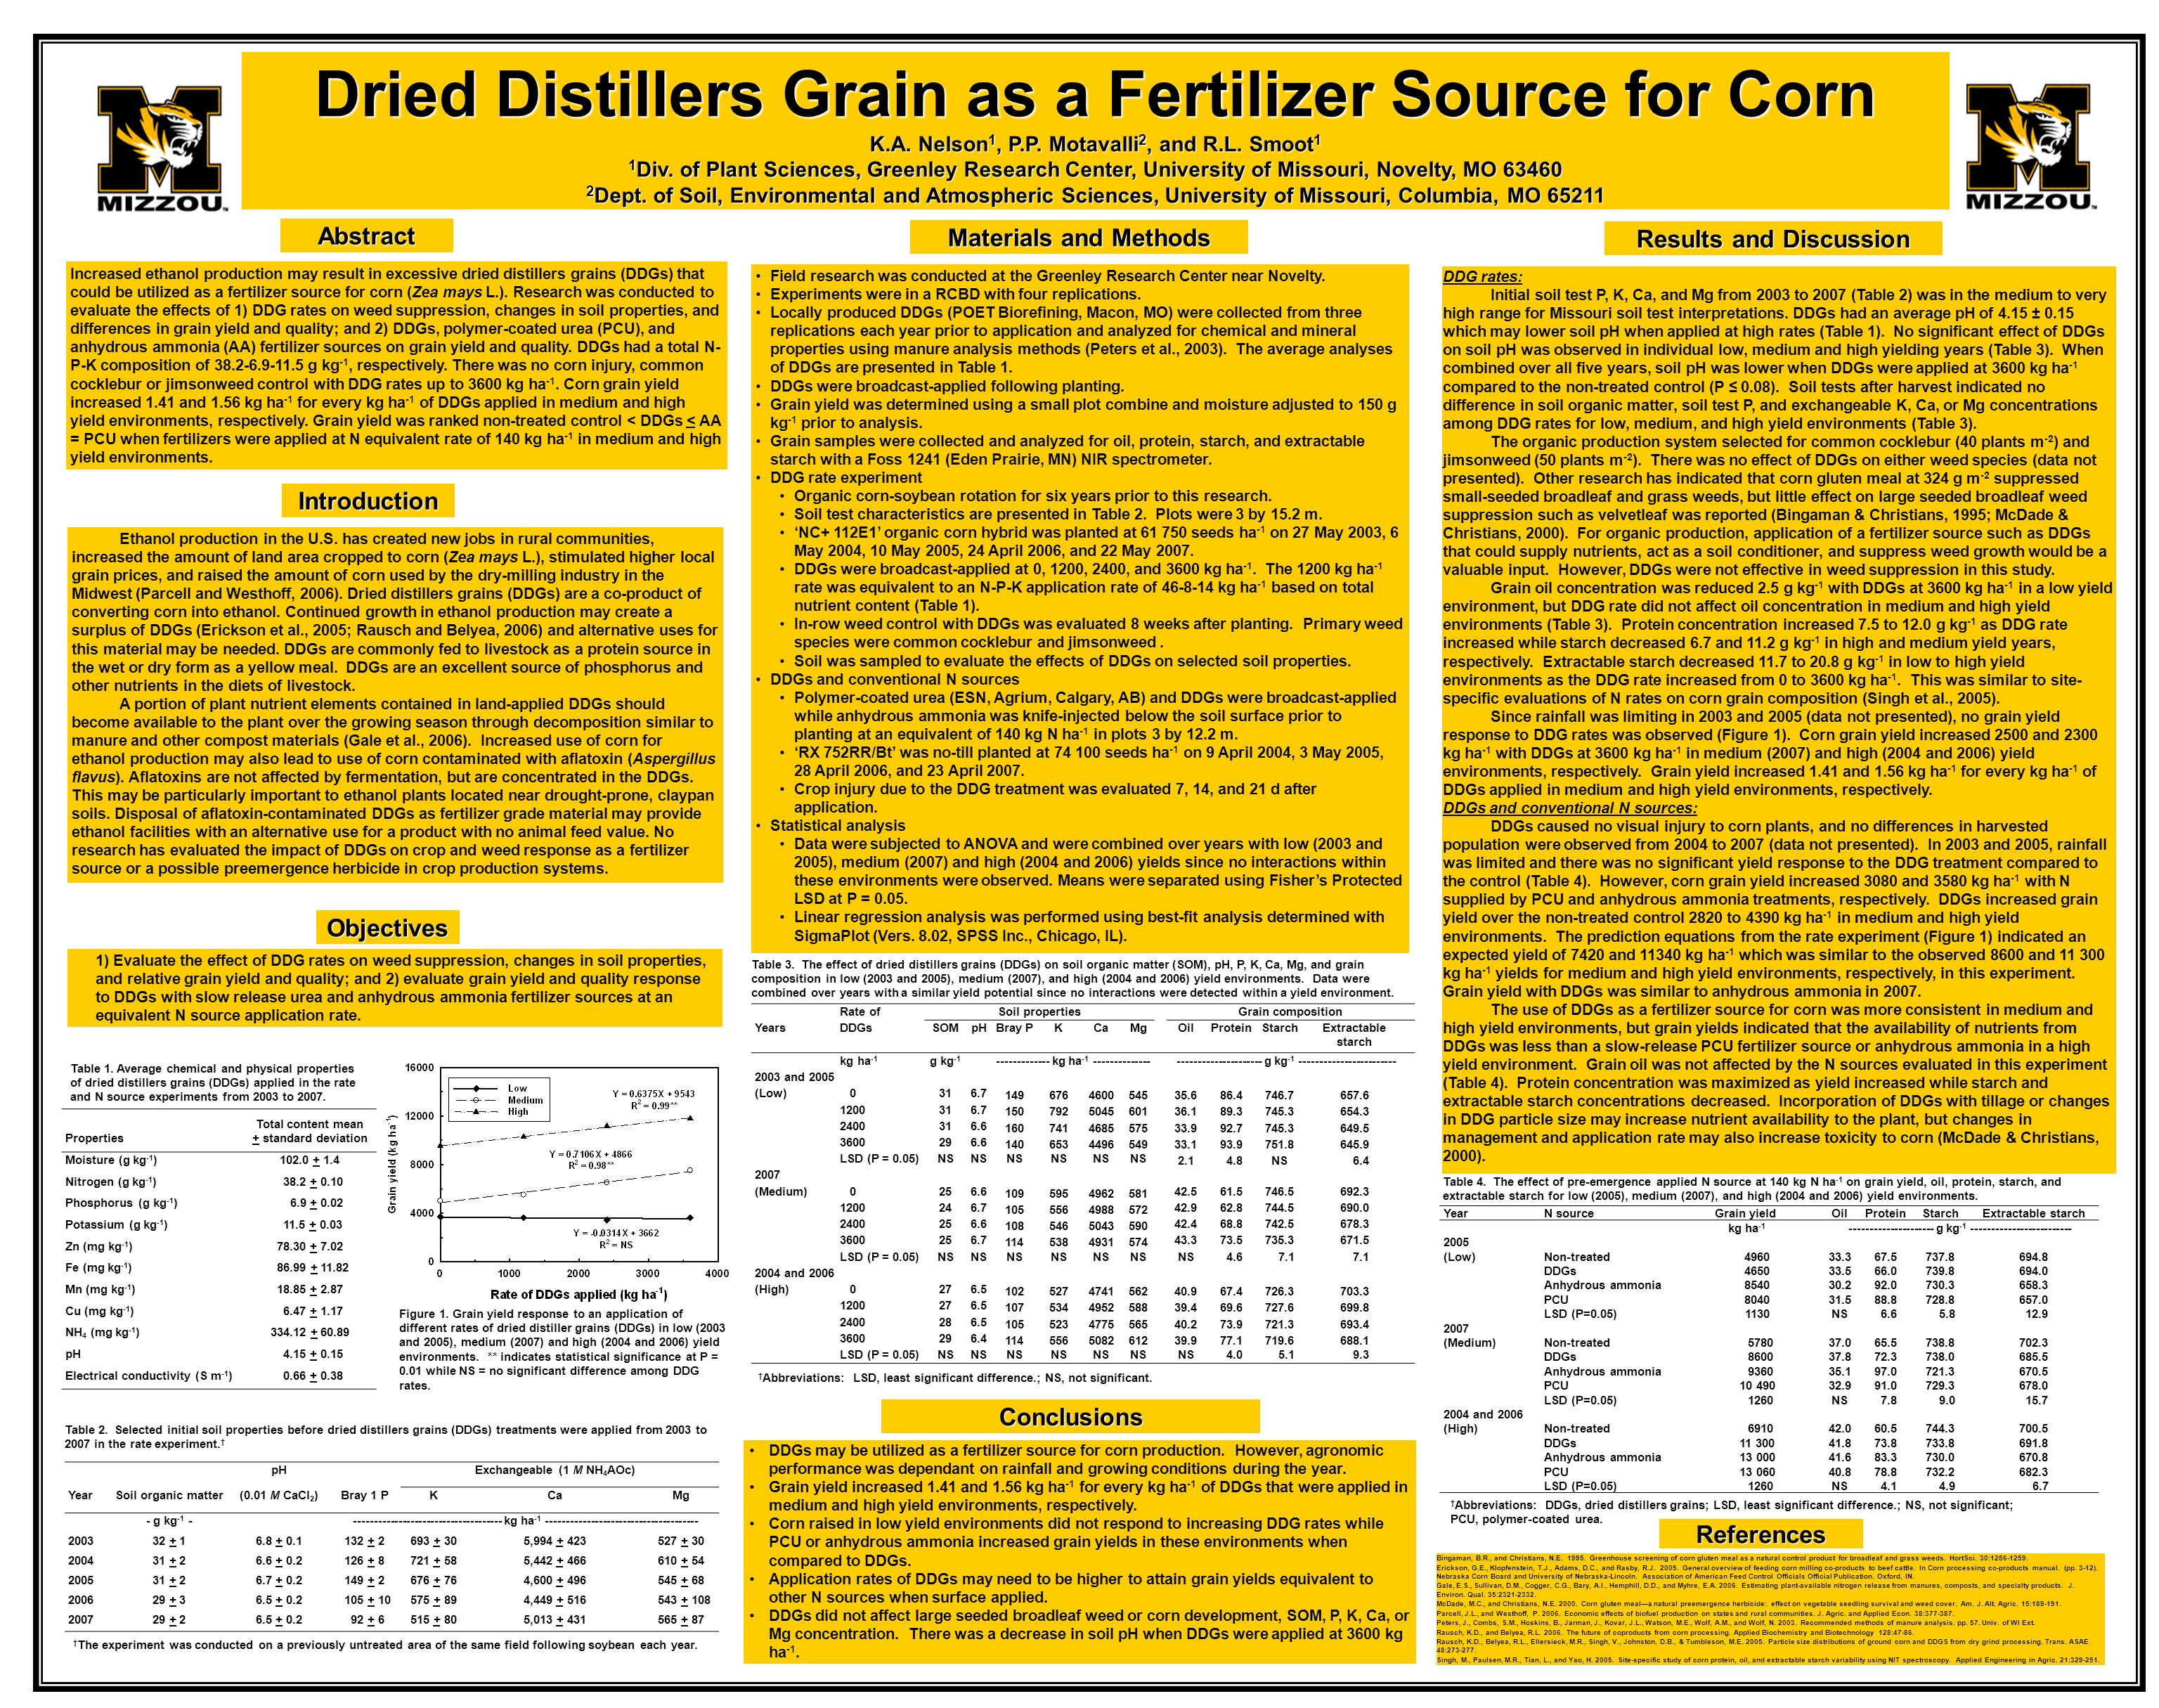 Conclusions DDGs may be utilized as a fertilizer source for corn production. However, agronomic performance was dependant on rainfall and growing cond